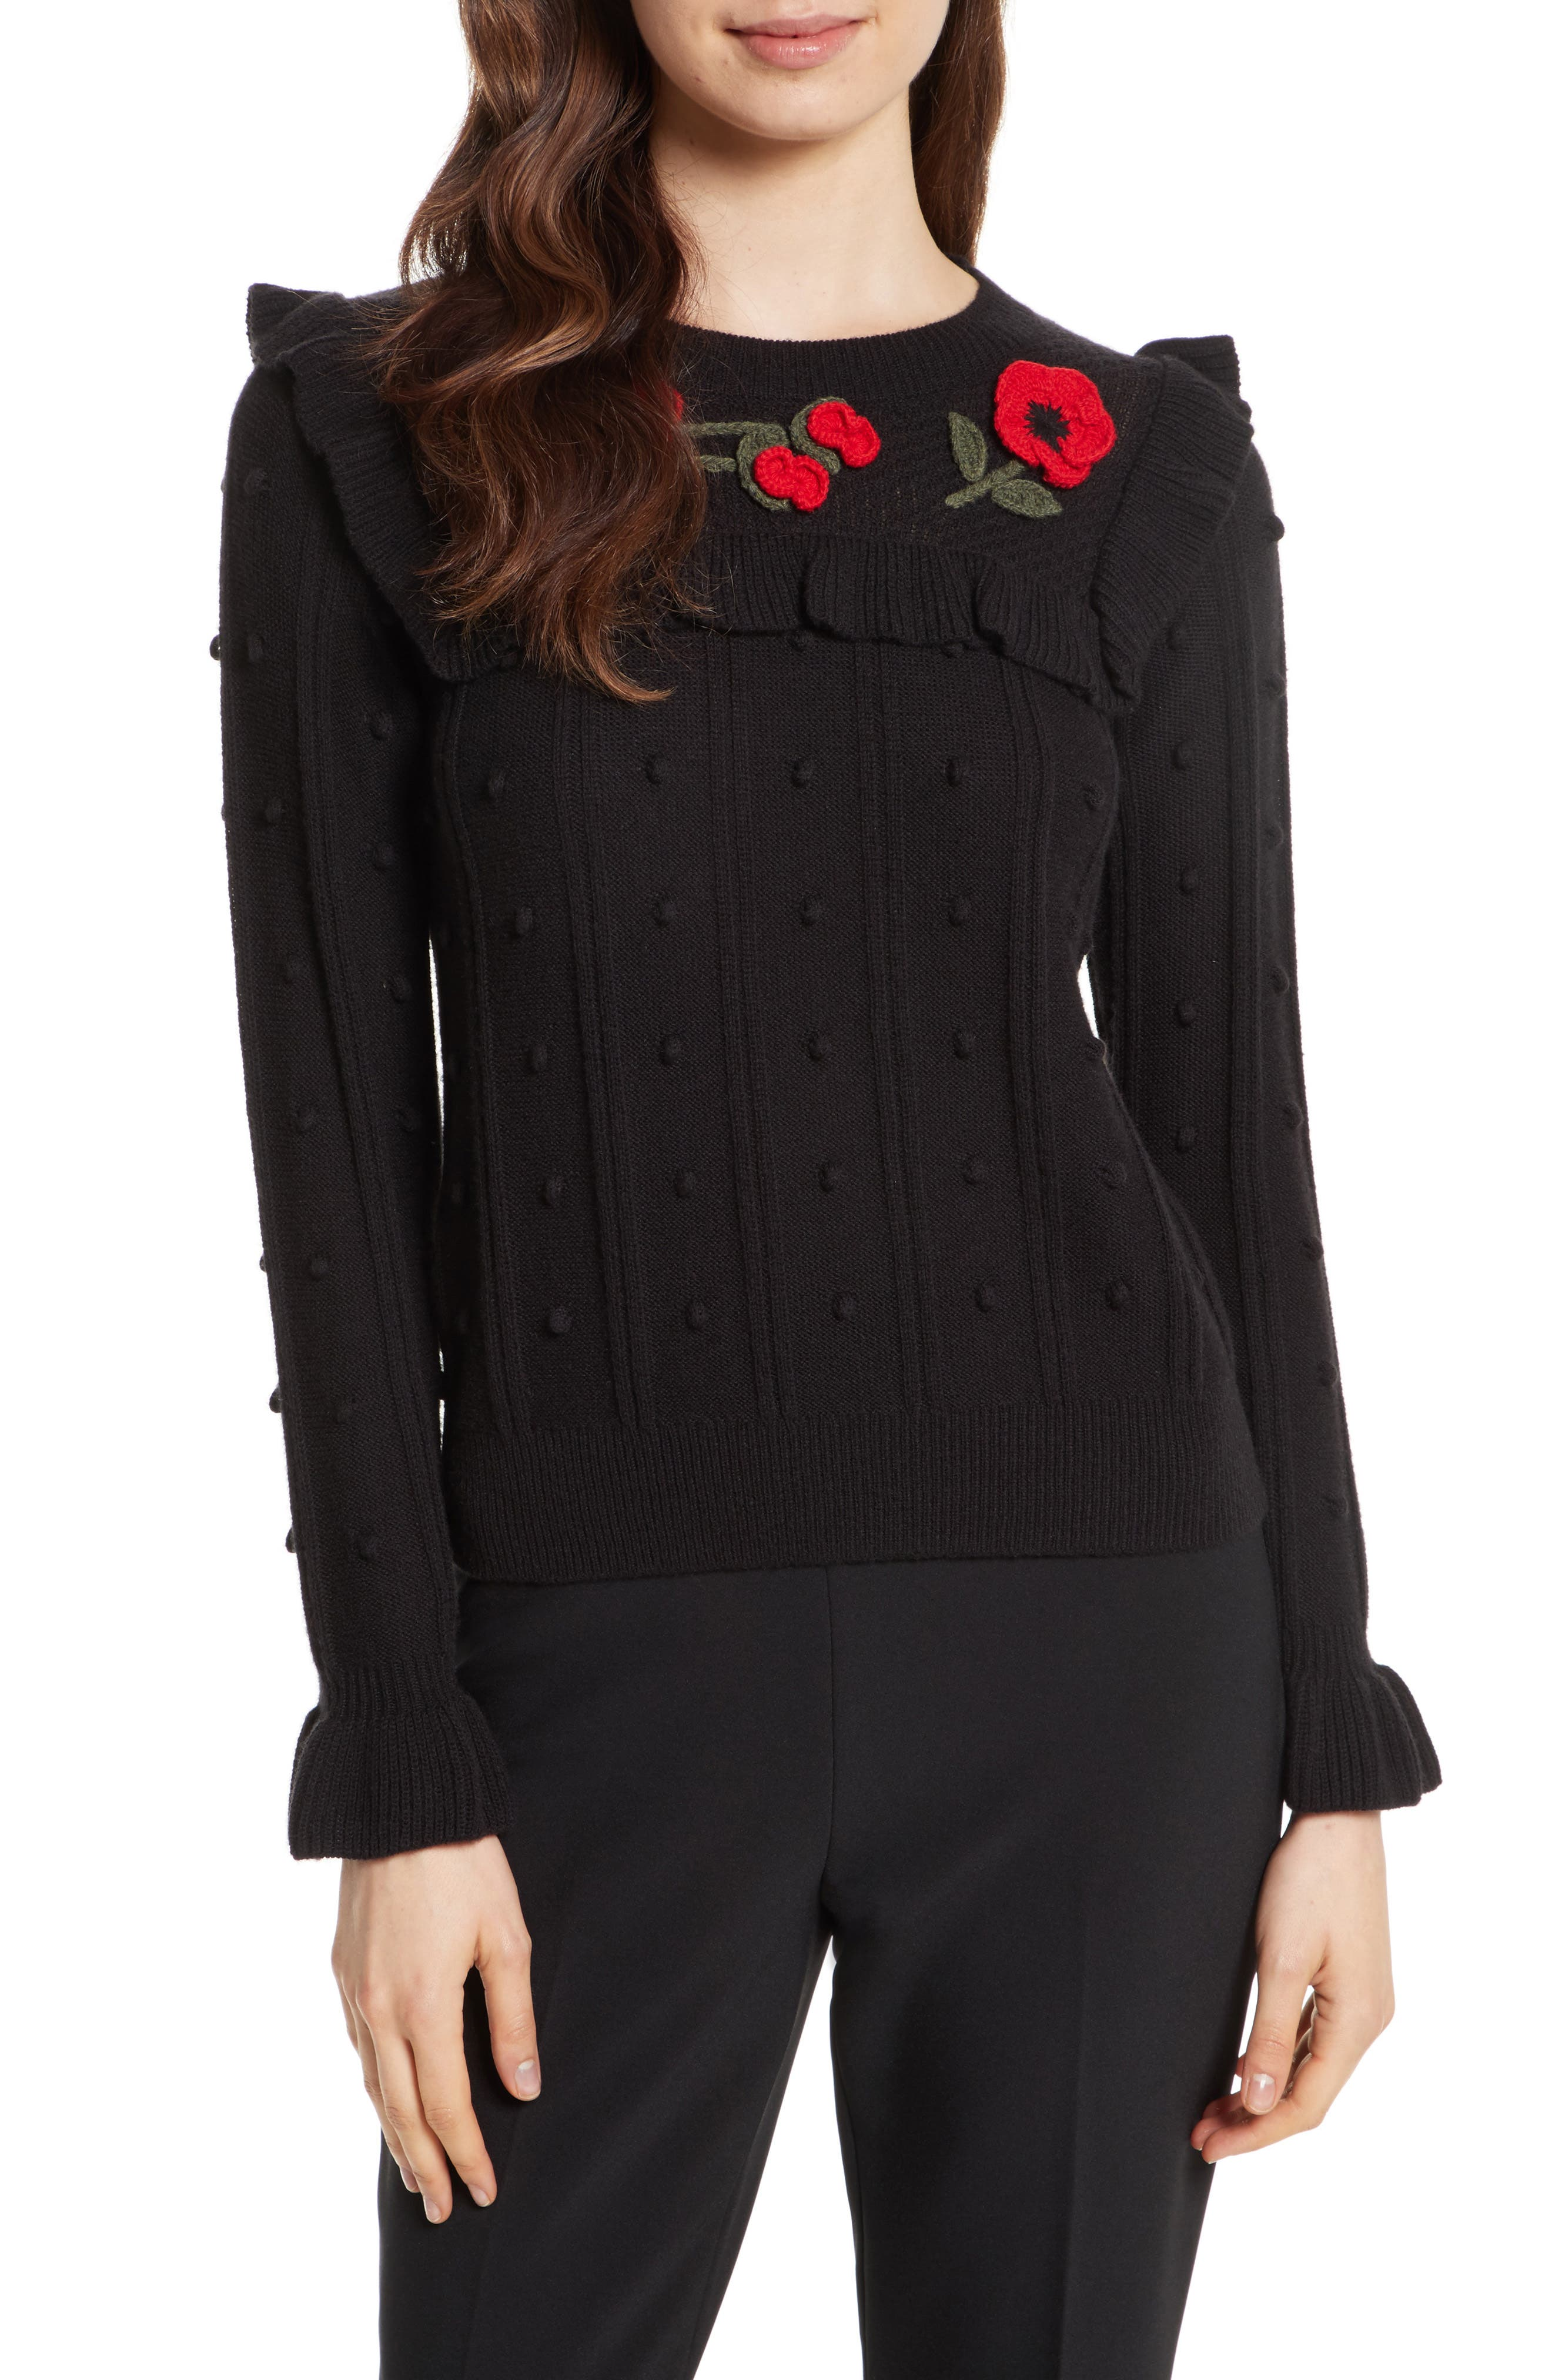 kate spade new york poppy embroidered sweater